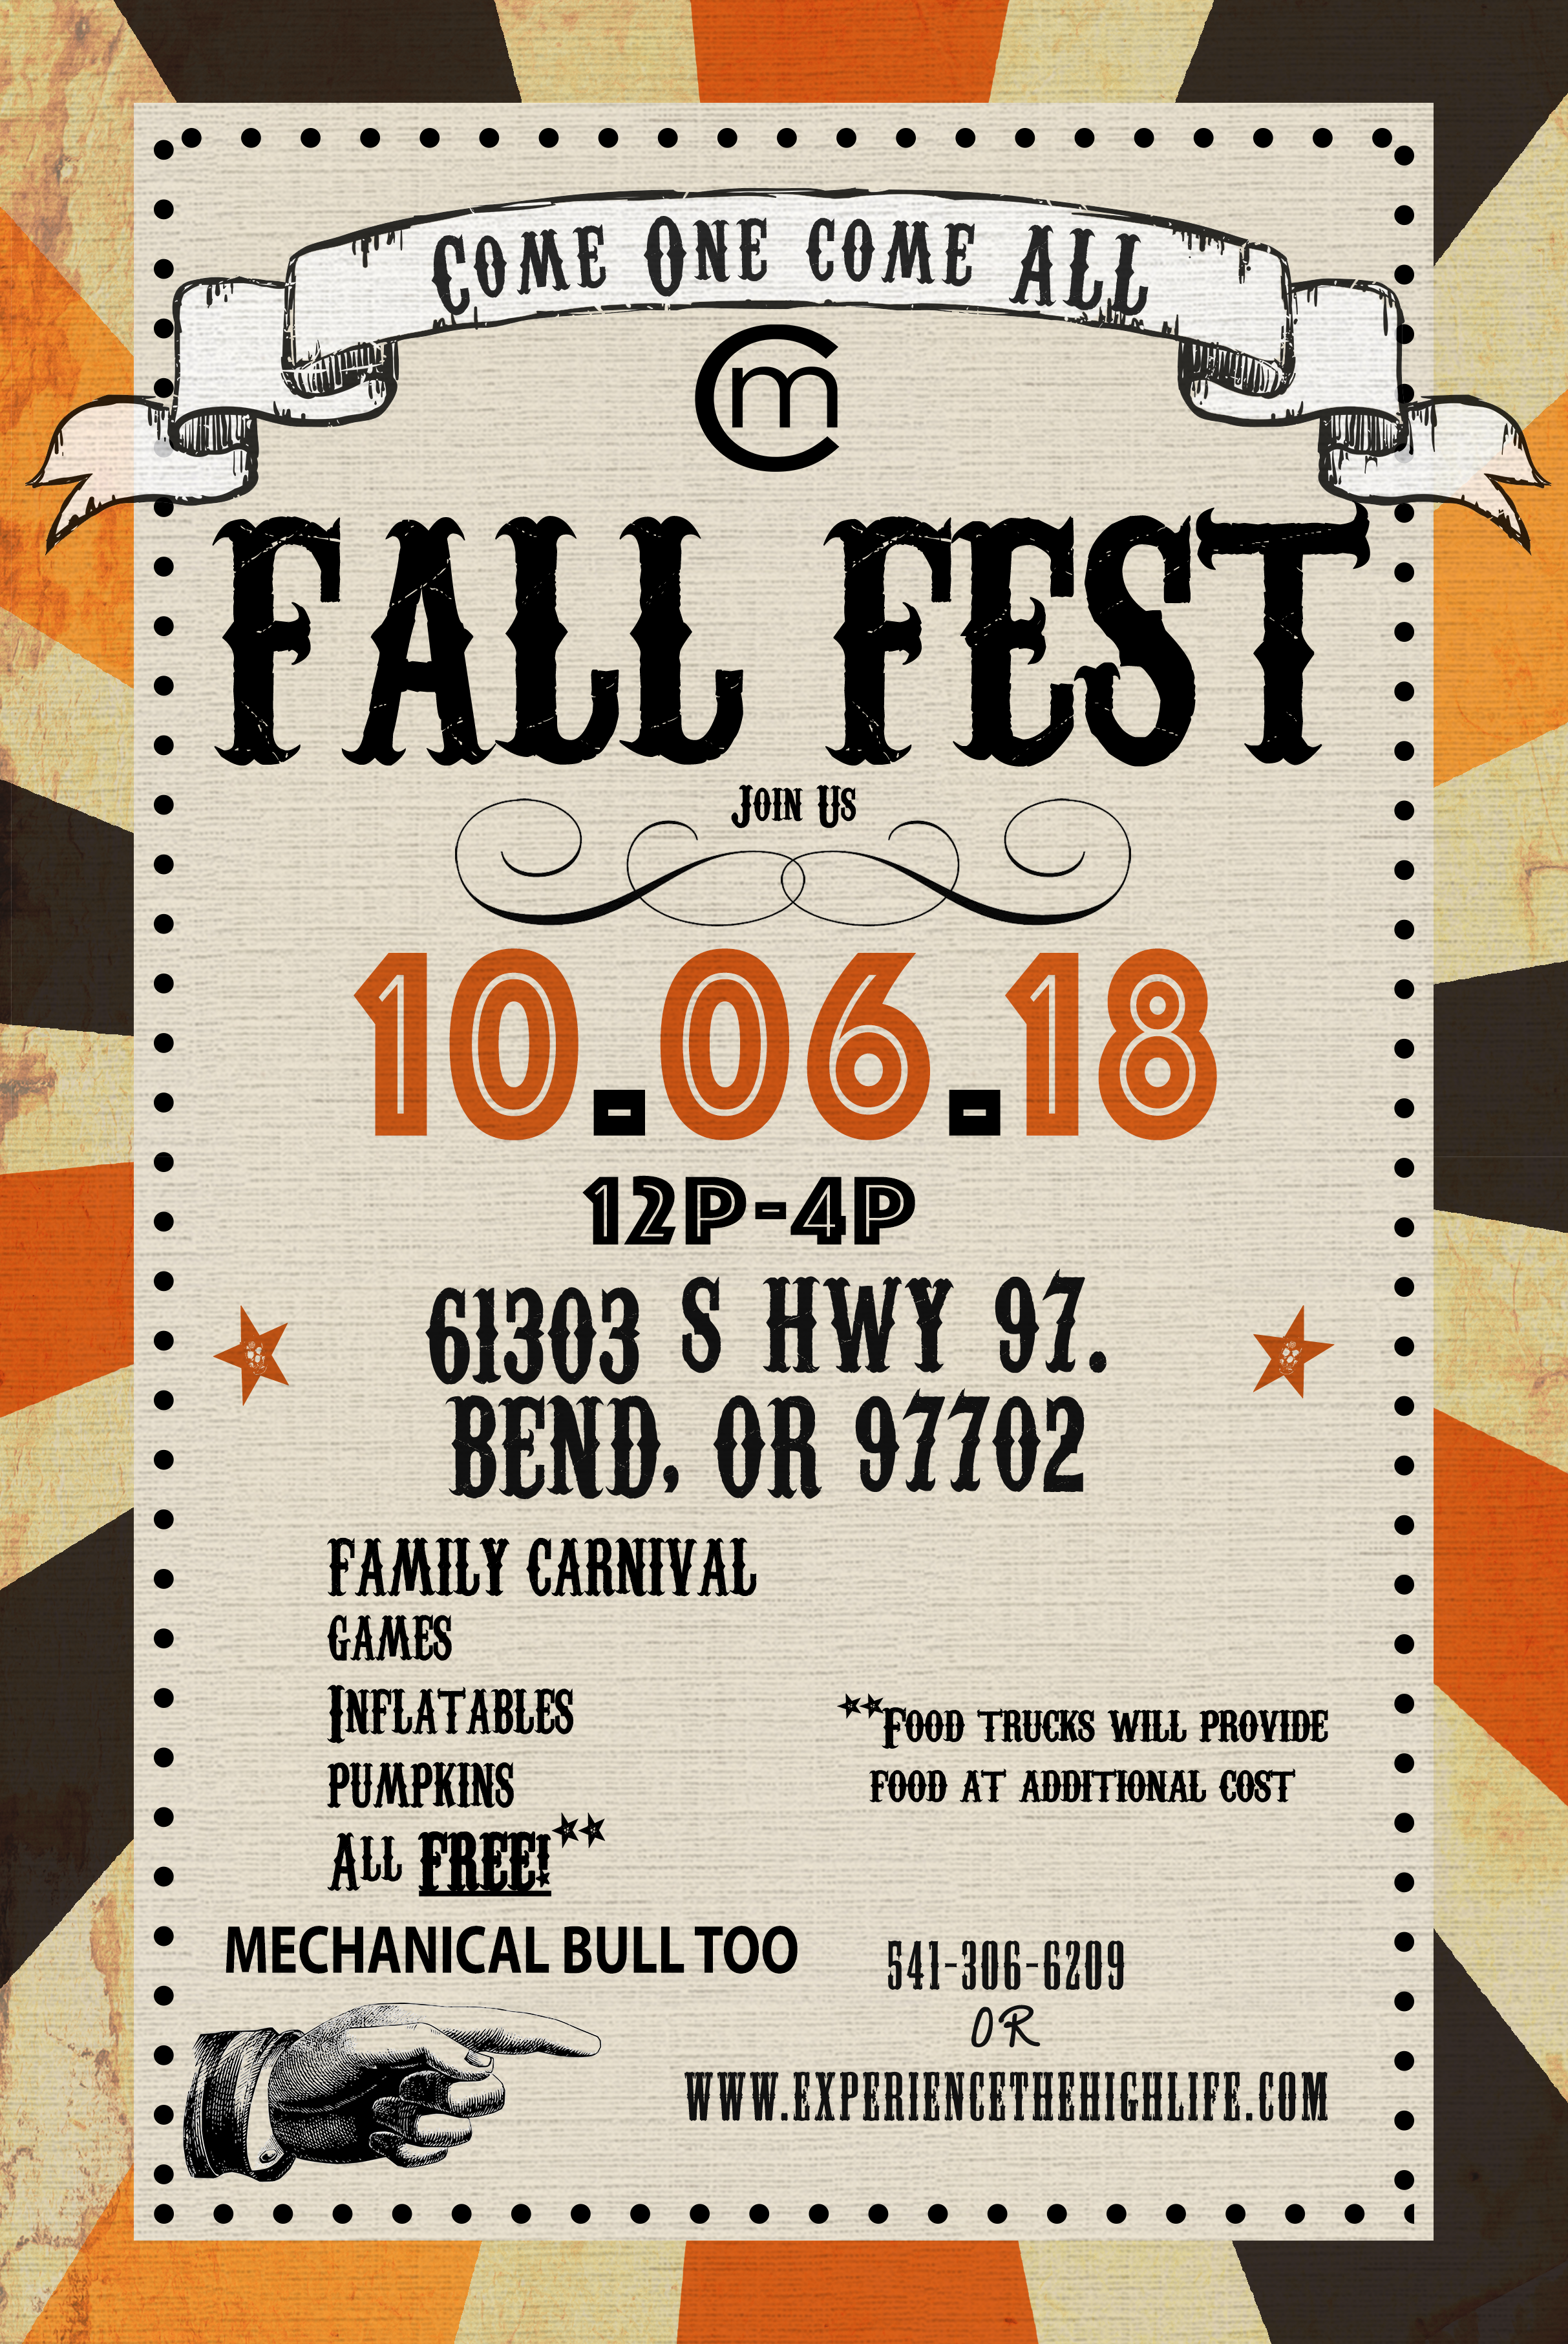 FallFest2018Poster_Bend.png